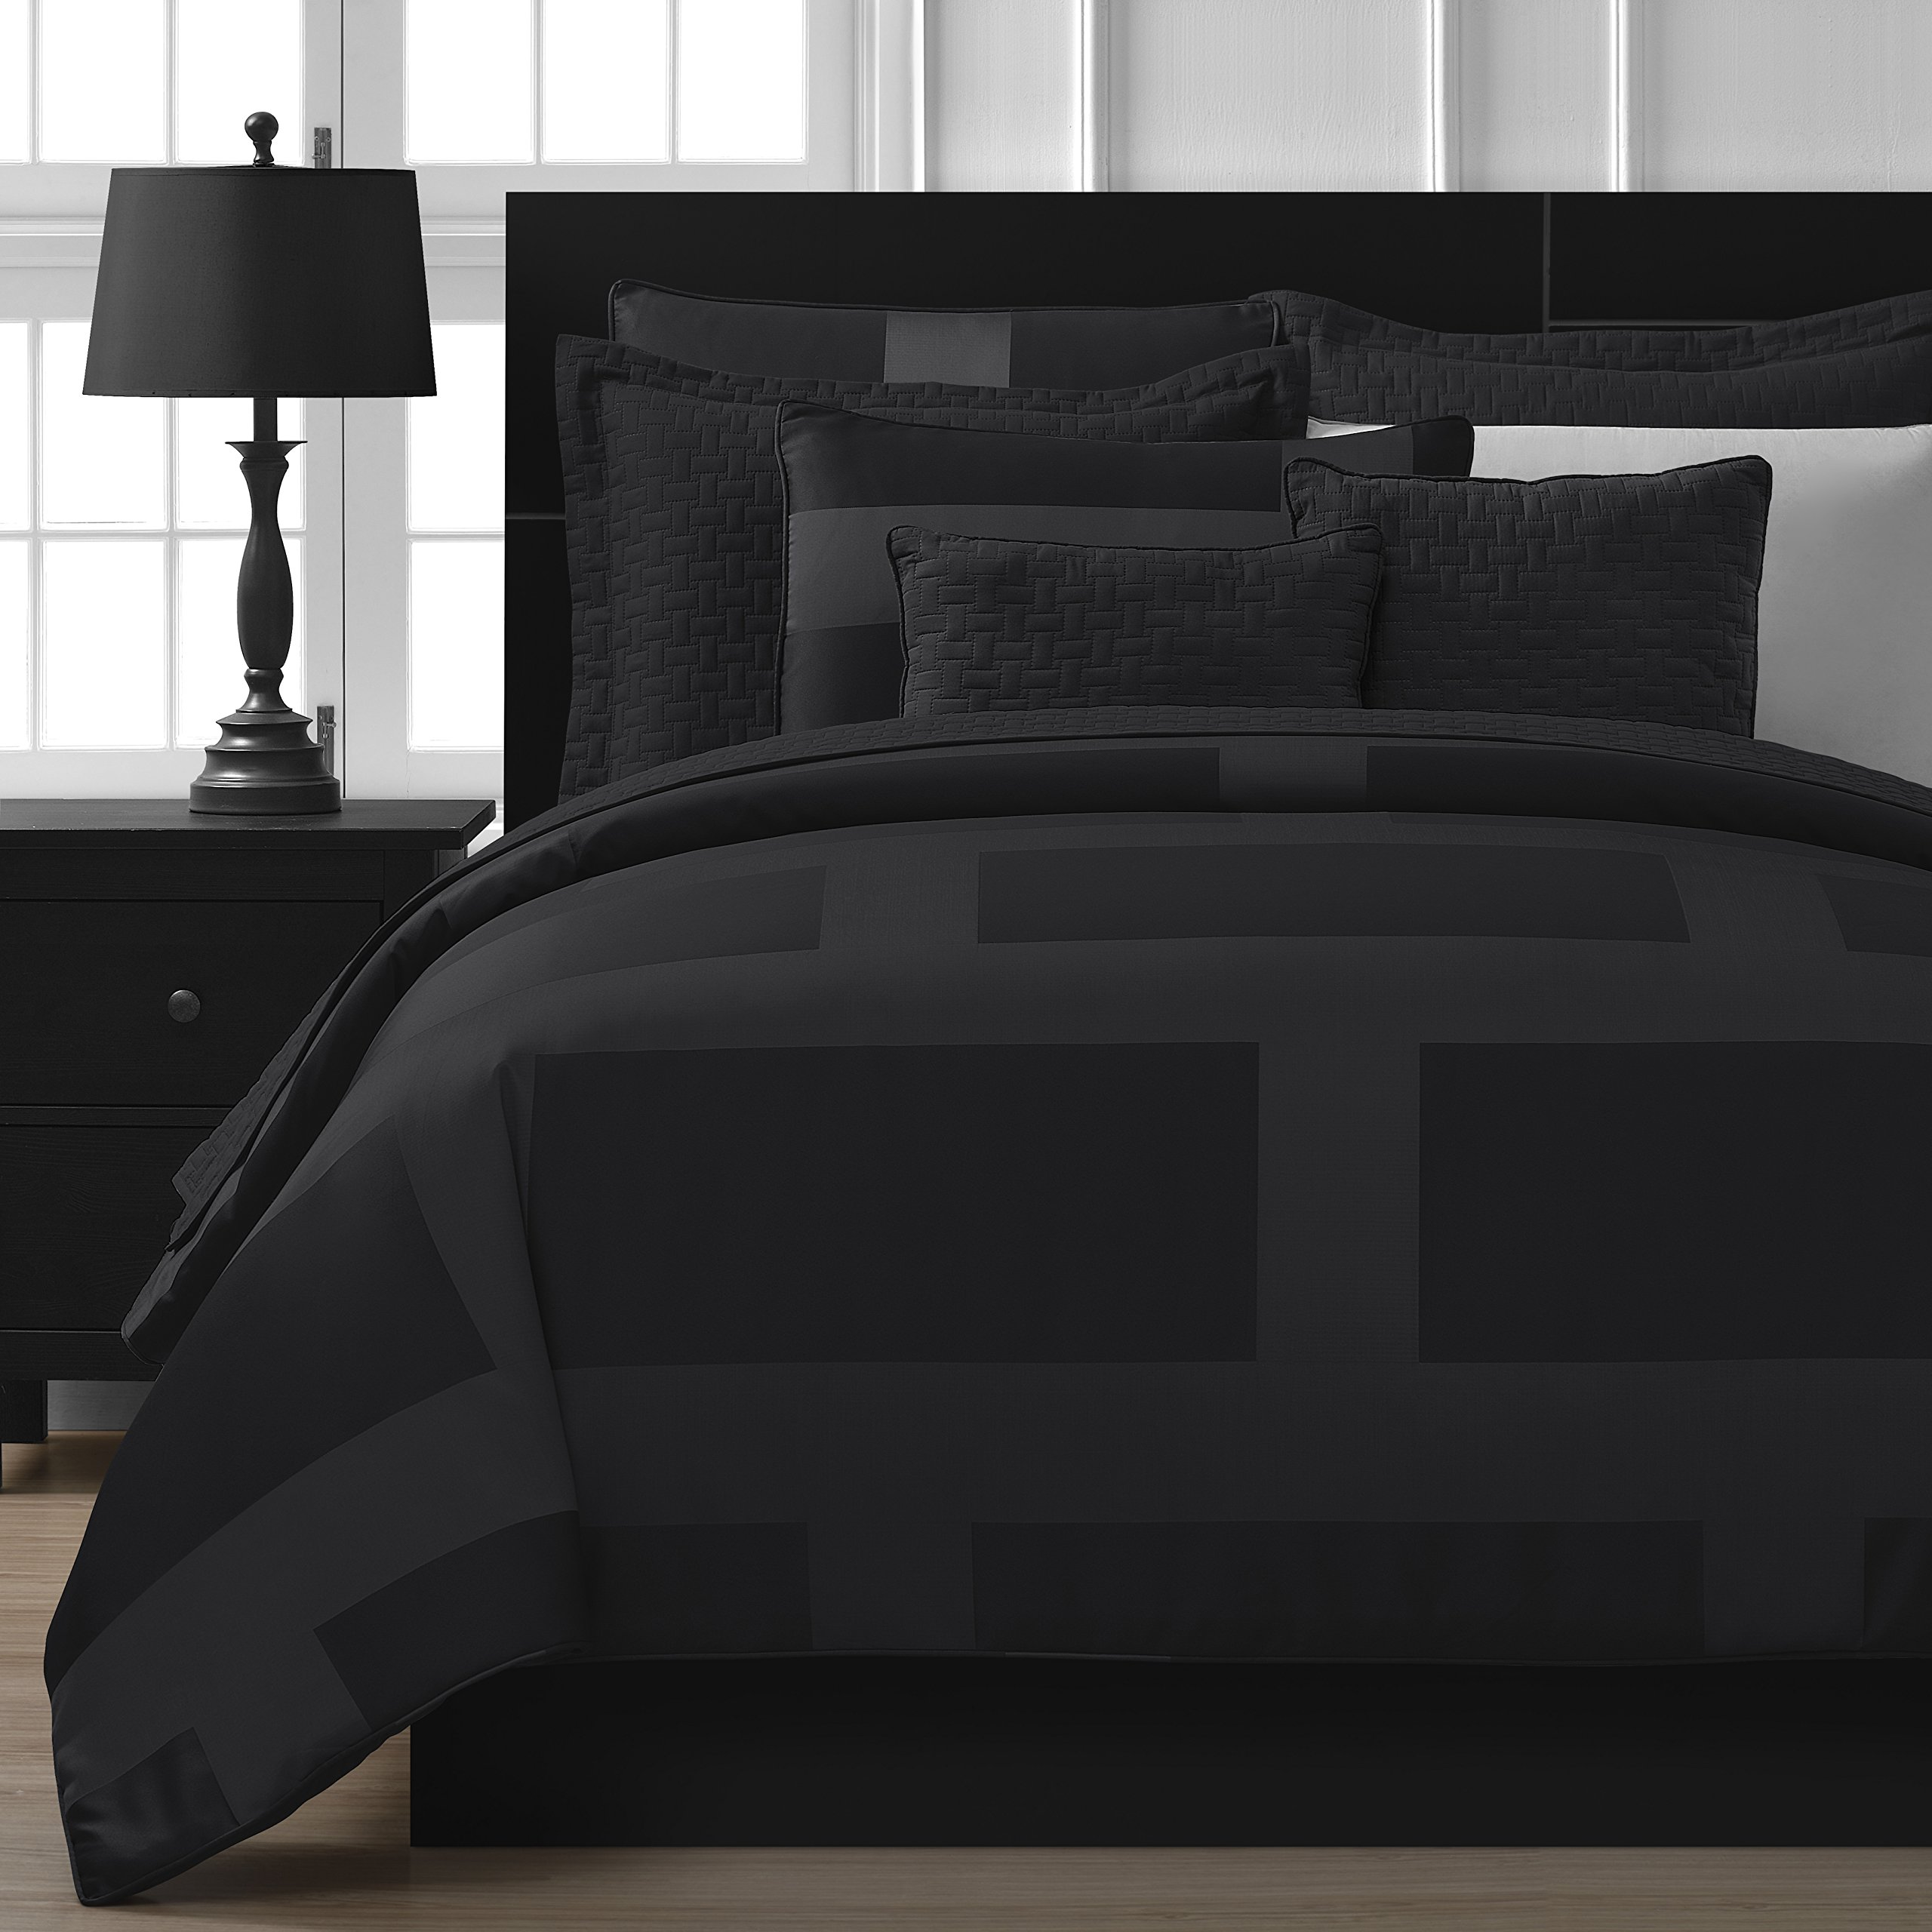 Comfy Bedding Frame Jacquard Microfiber Full 5-piece Comforter Set, Black